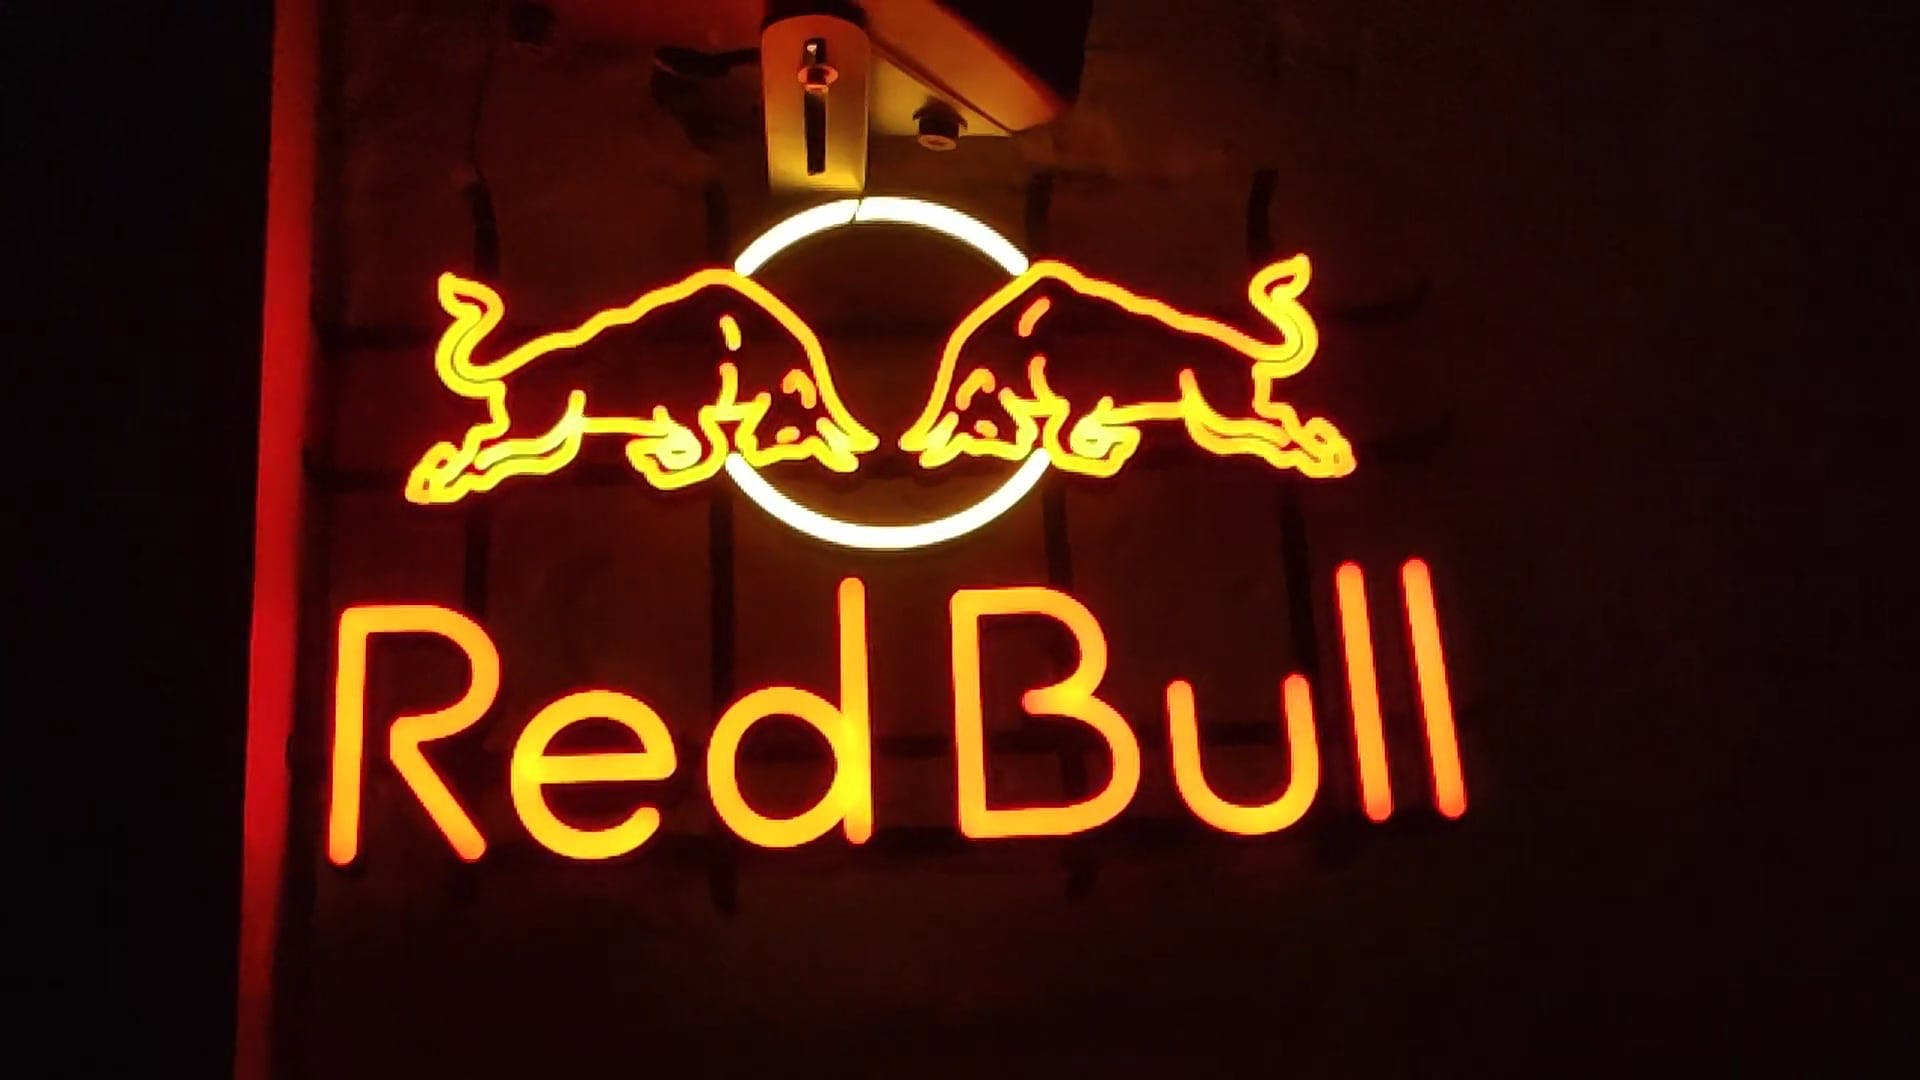 Glowing Sign Board Of Red Bull